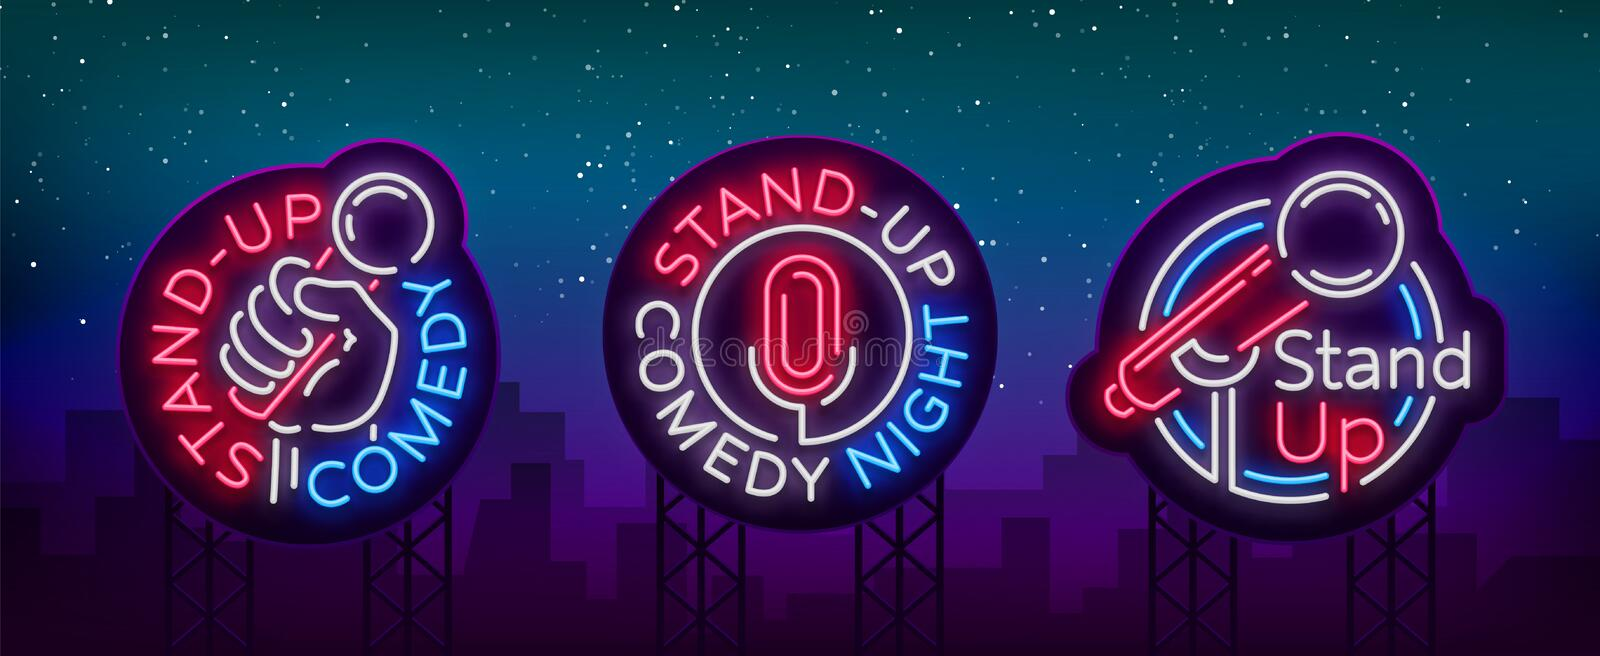 Stand Up Comedy Show is a collection of neon signage. Collection of neon logos, a symbol, a bright light banner, a neon royalty free illustration